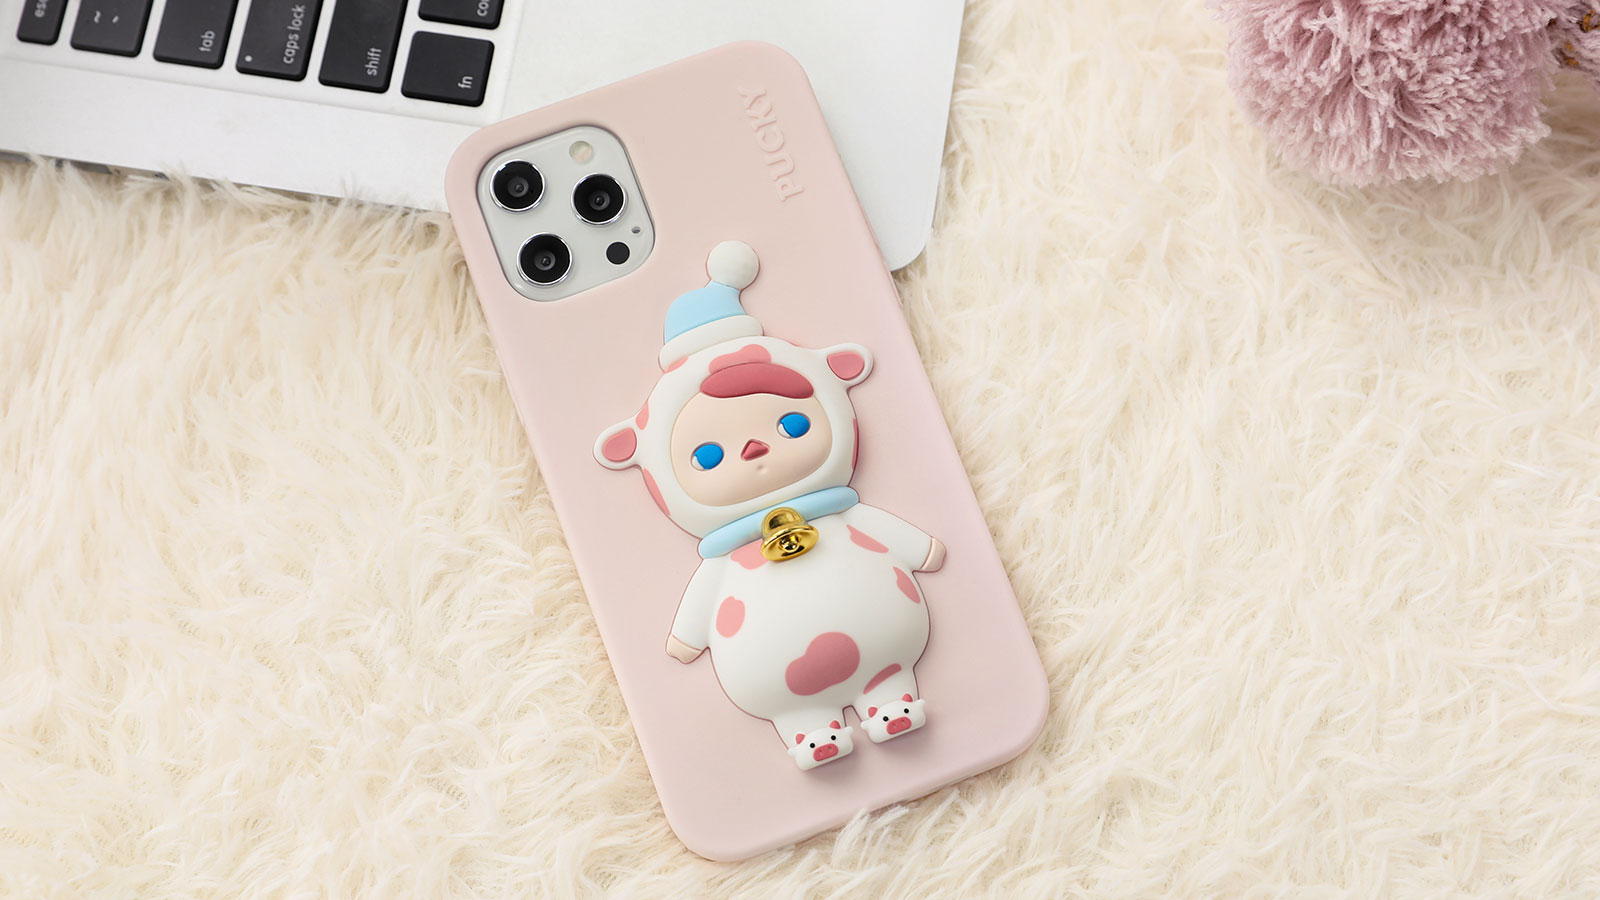 https://cdn.shopifycdn.net/s/files/1/0339/7091/3412/files/2-1_POP_MART_Pucky_Milk_Babies_Phone_Case.jpg?v=1615947600